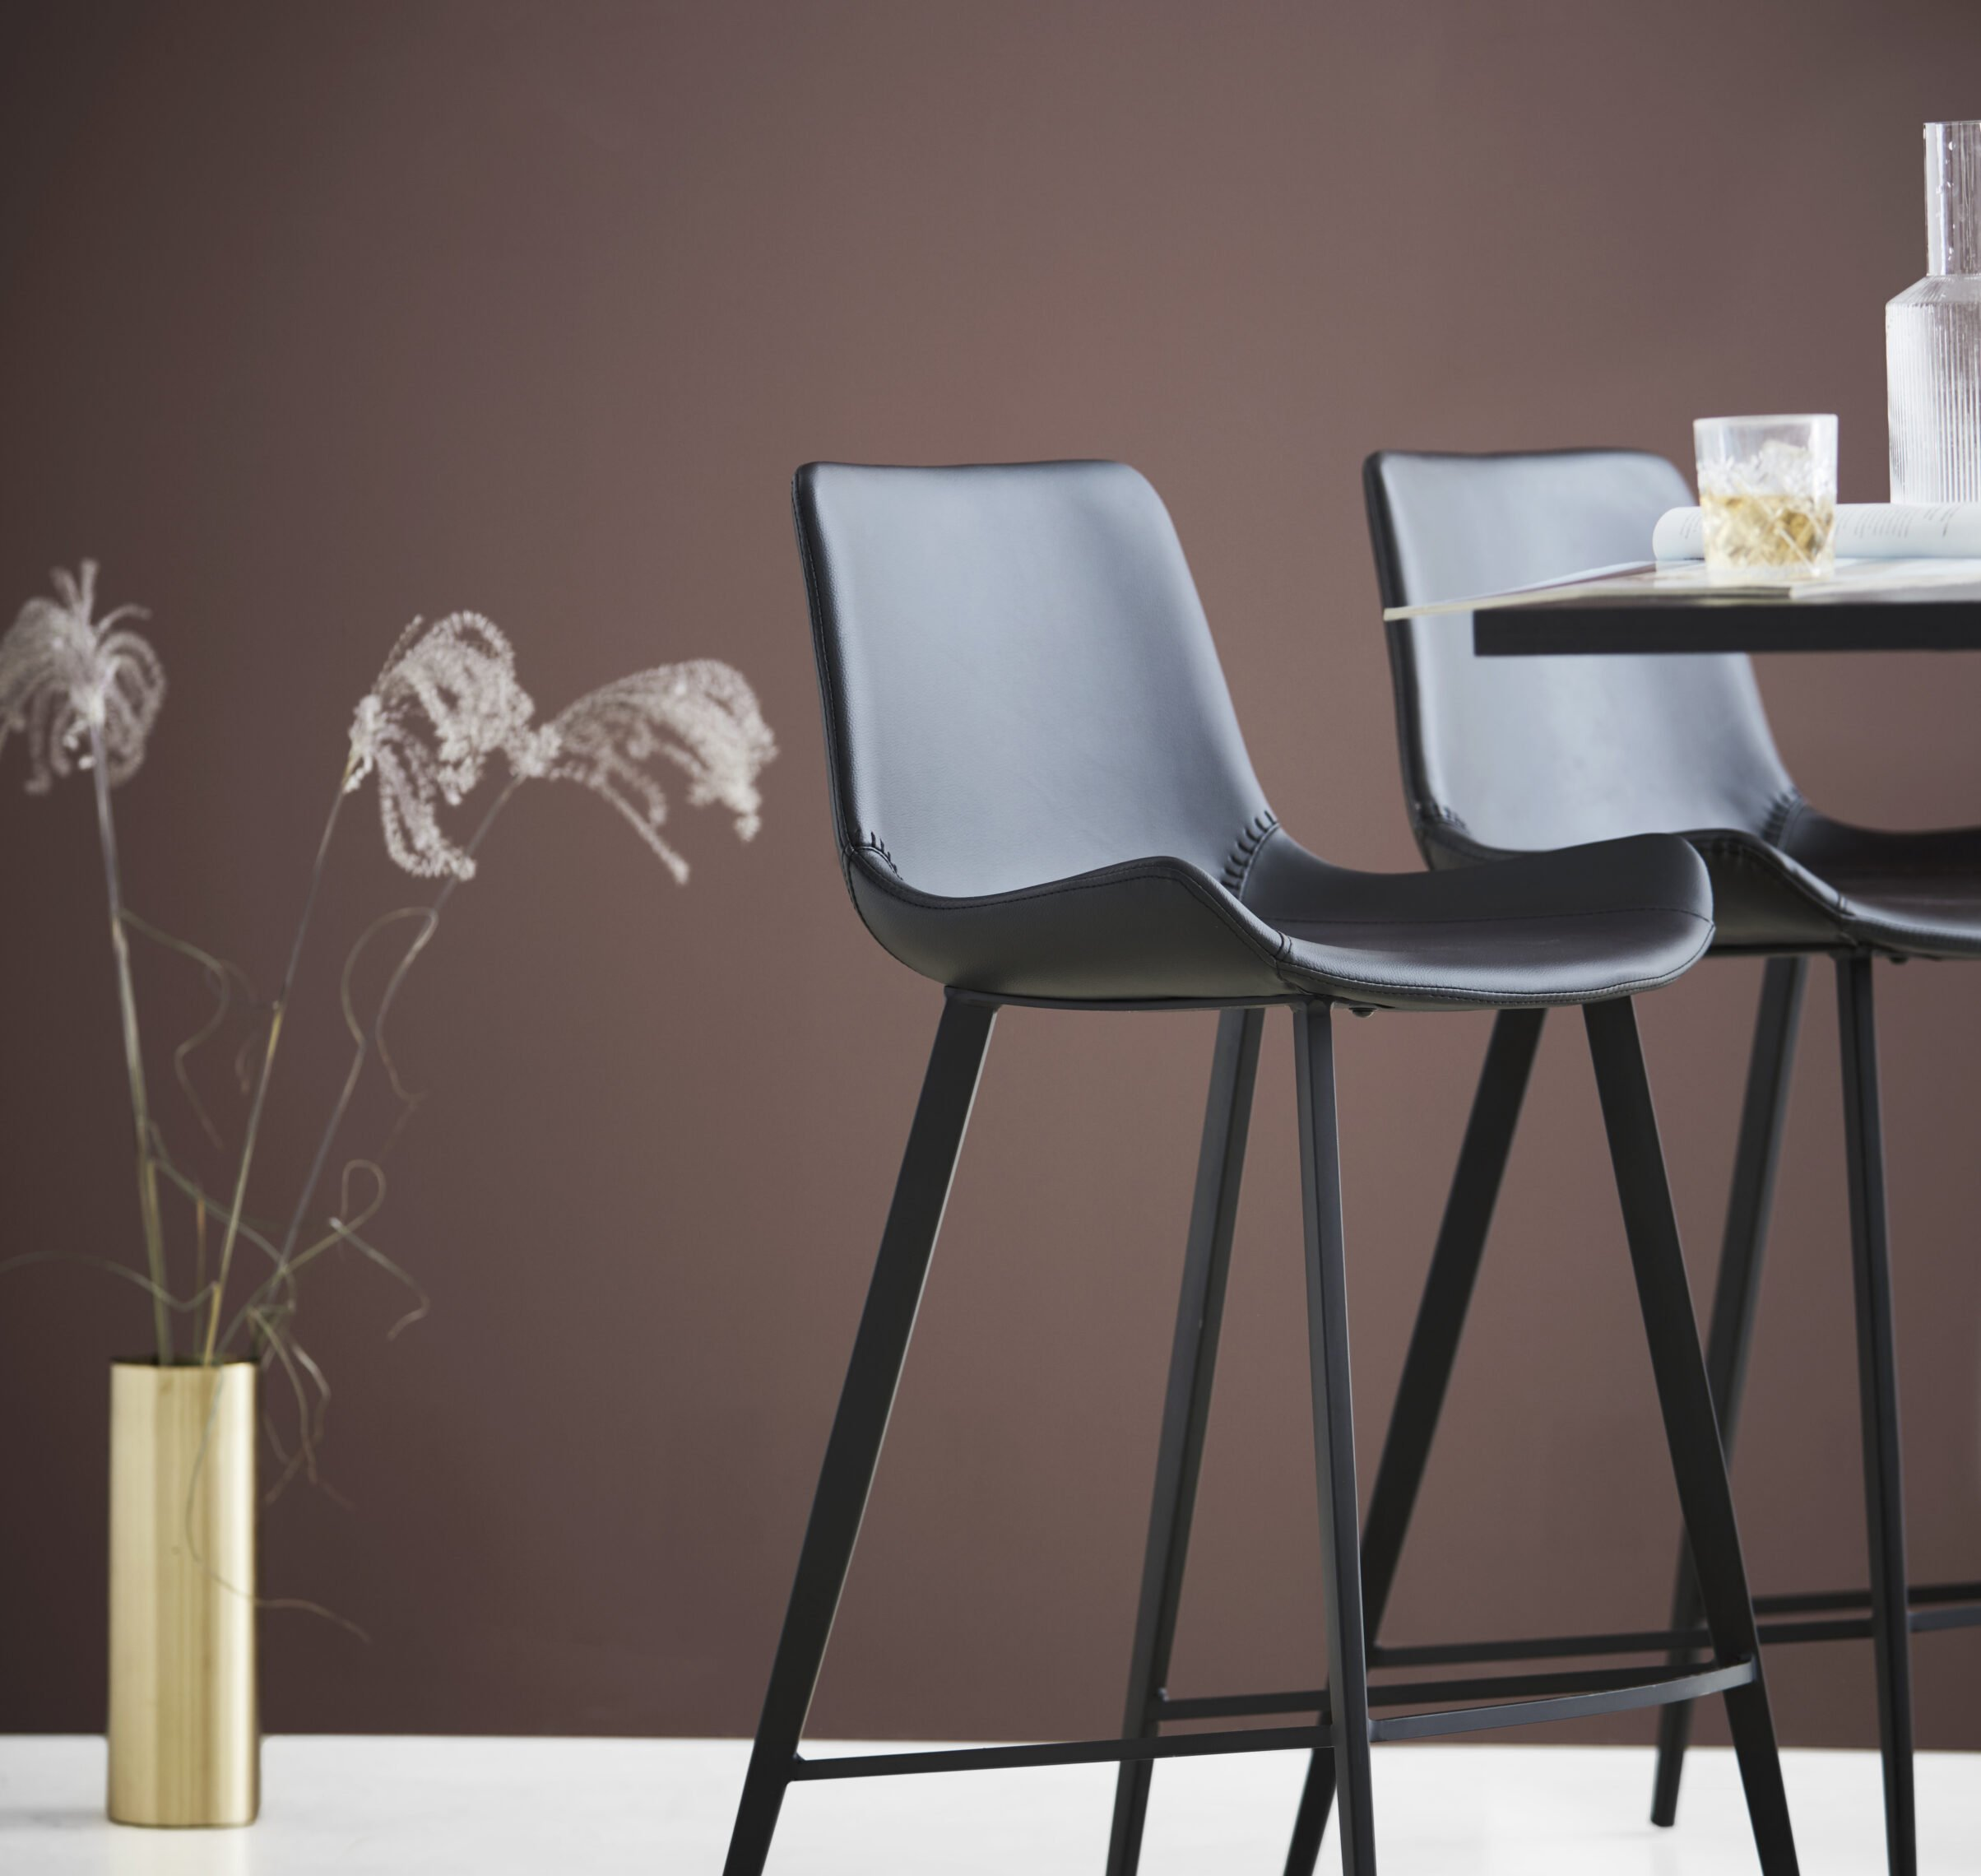 hype-bar-and-counter-stool-vintage-black-art-leather-with-black-legs-200700760-200490700-200800500-mood-lifestyle-01